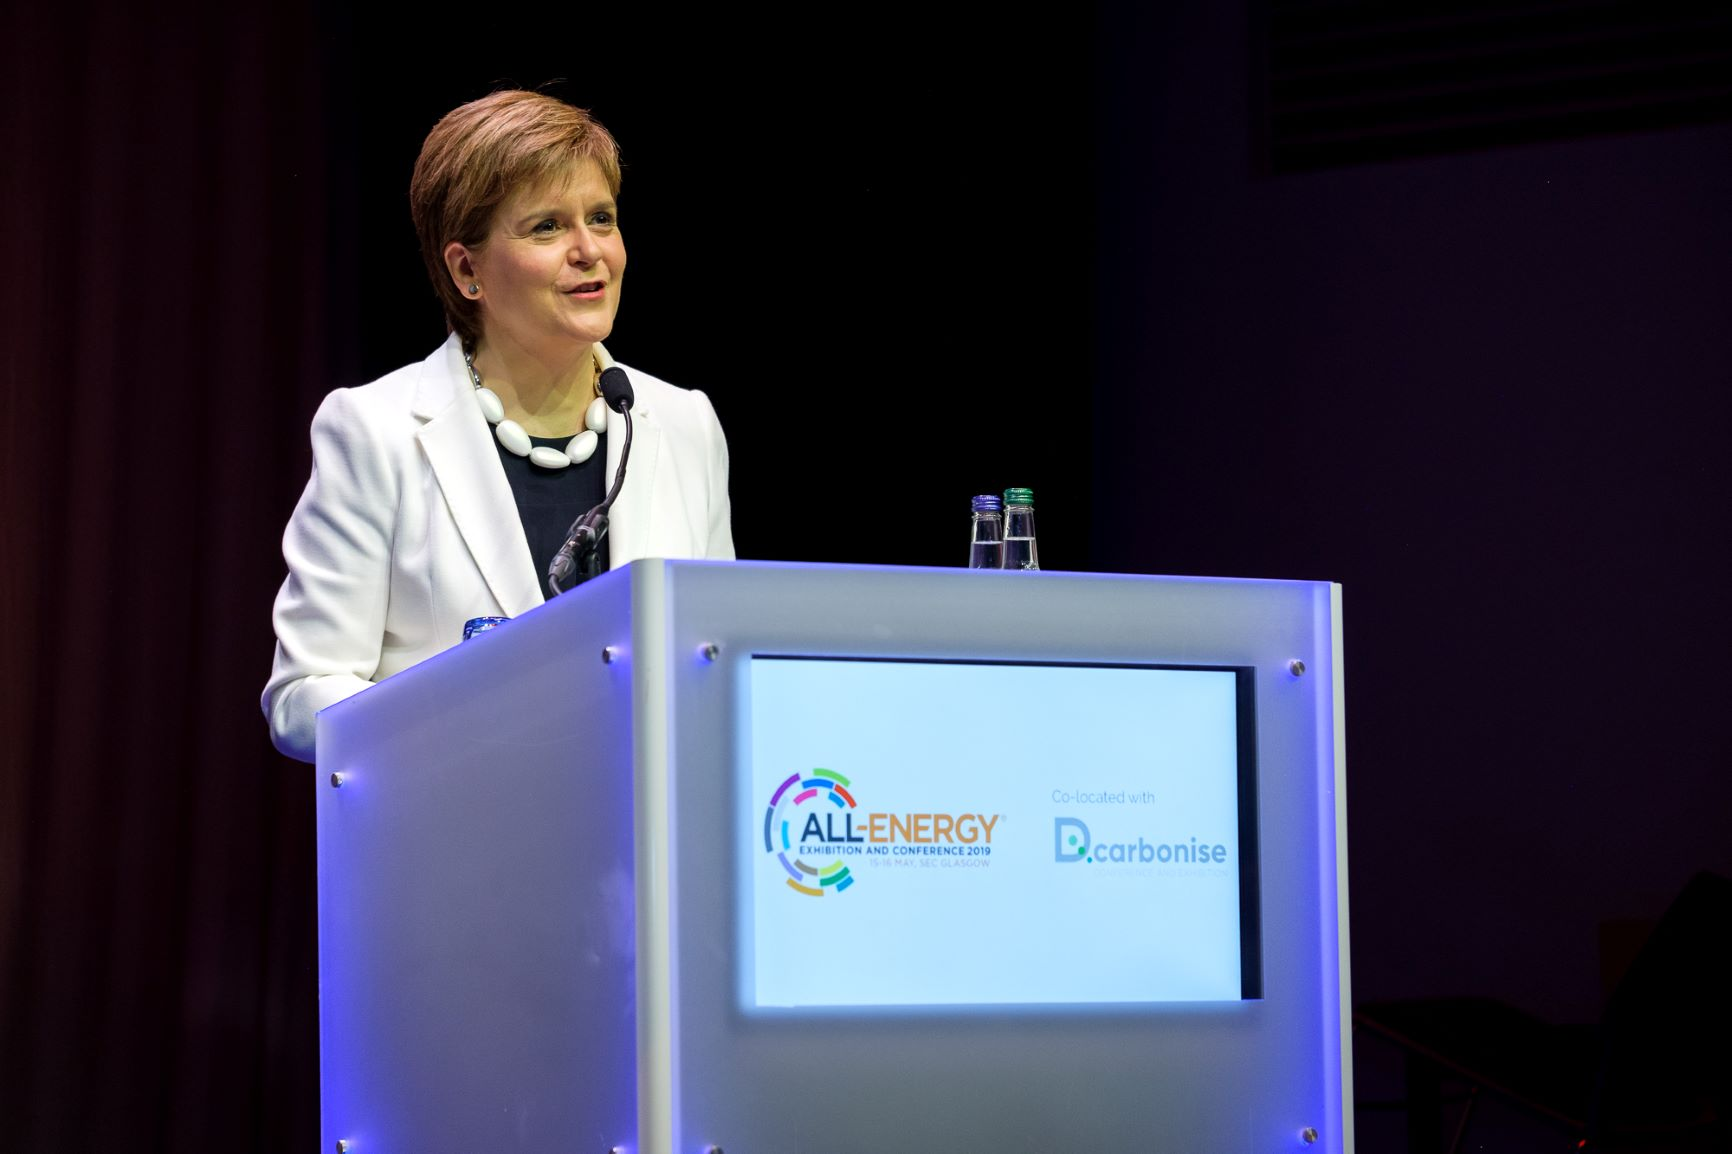 'At least' £1bn North Sea cash should fund energy transition, Sturgeon says